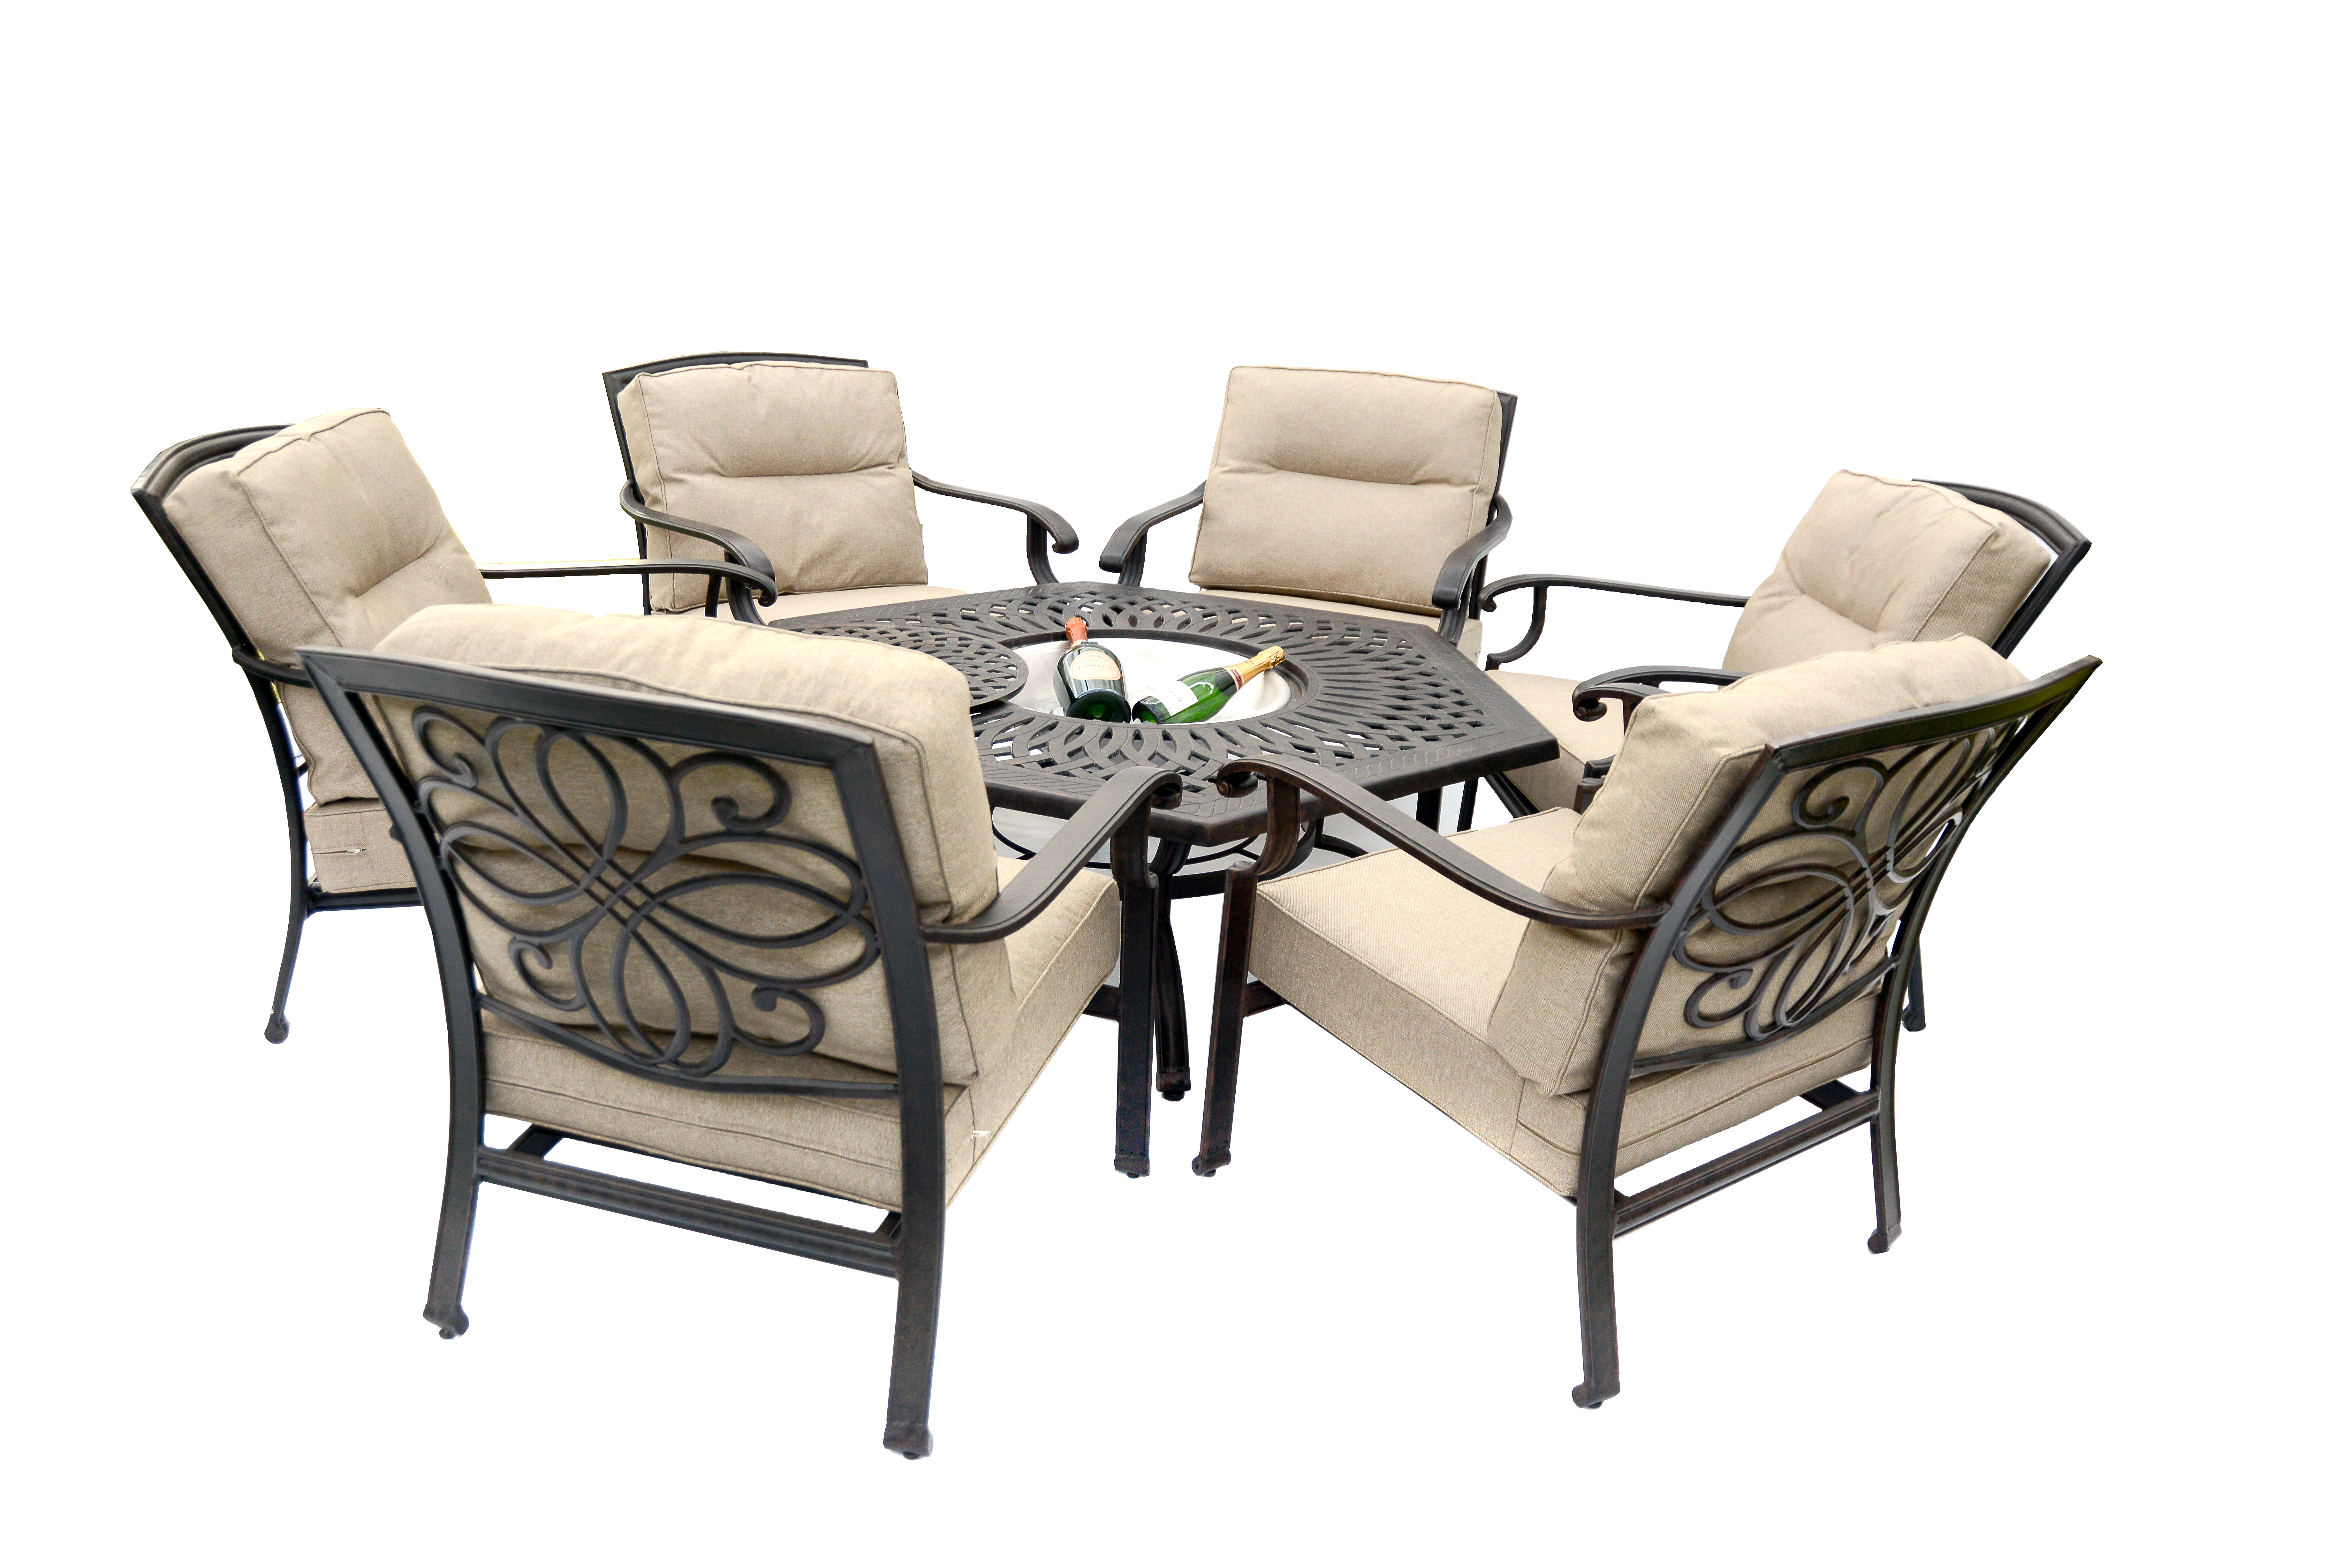 Gregg Wallace 6 Chair Firepit Set with 150cm Low Hexagonal